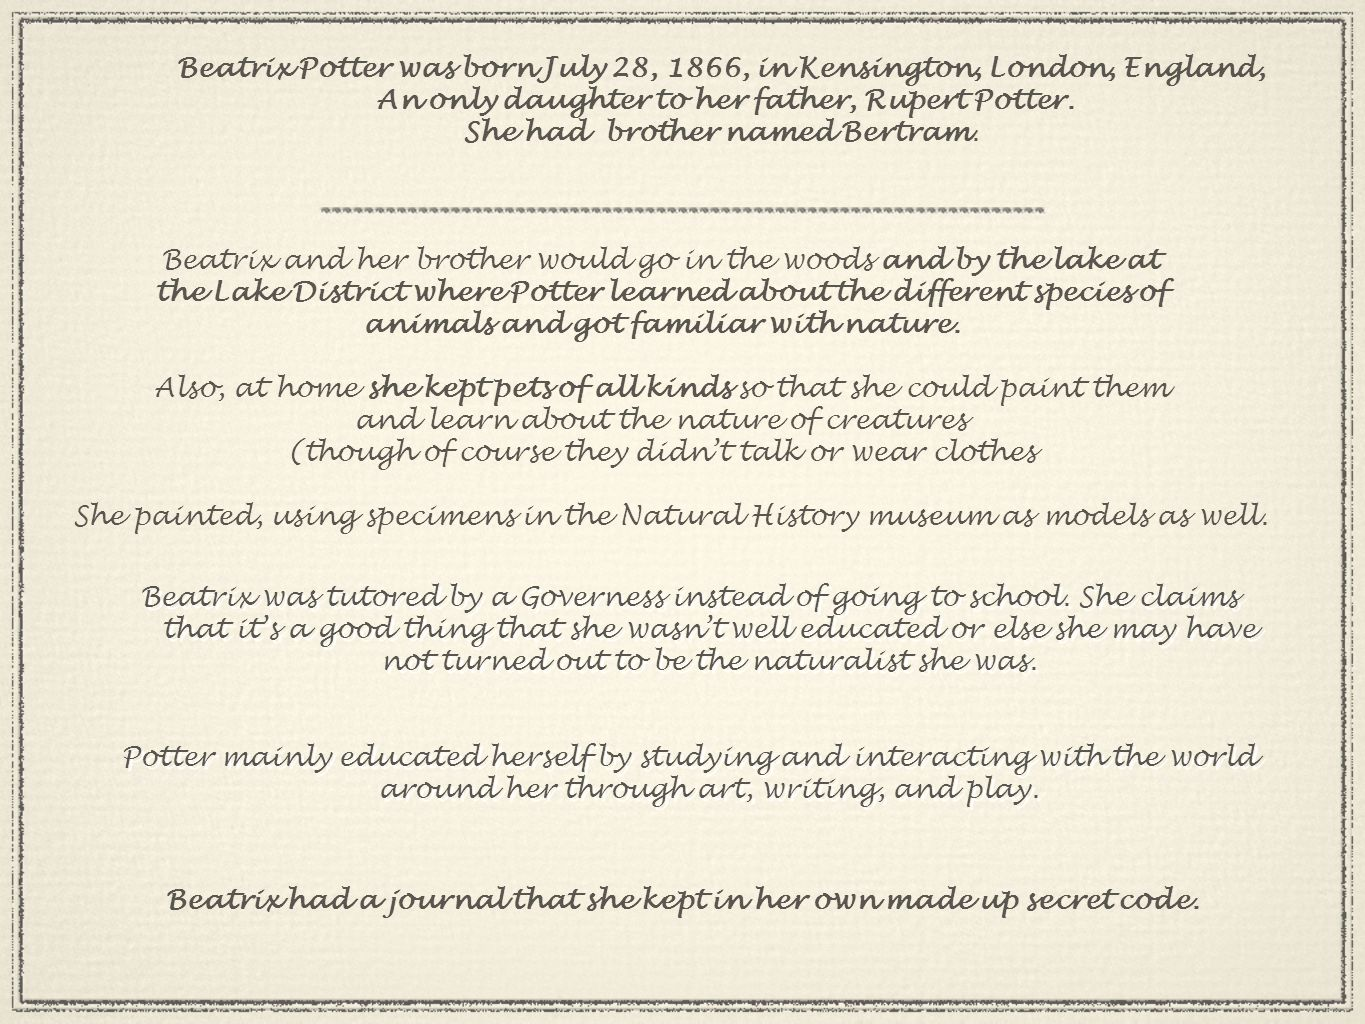 Beatrix Potter was born July 28, 1866, in Kensington, London, England, An only daughter to her father, Rupert Potter.